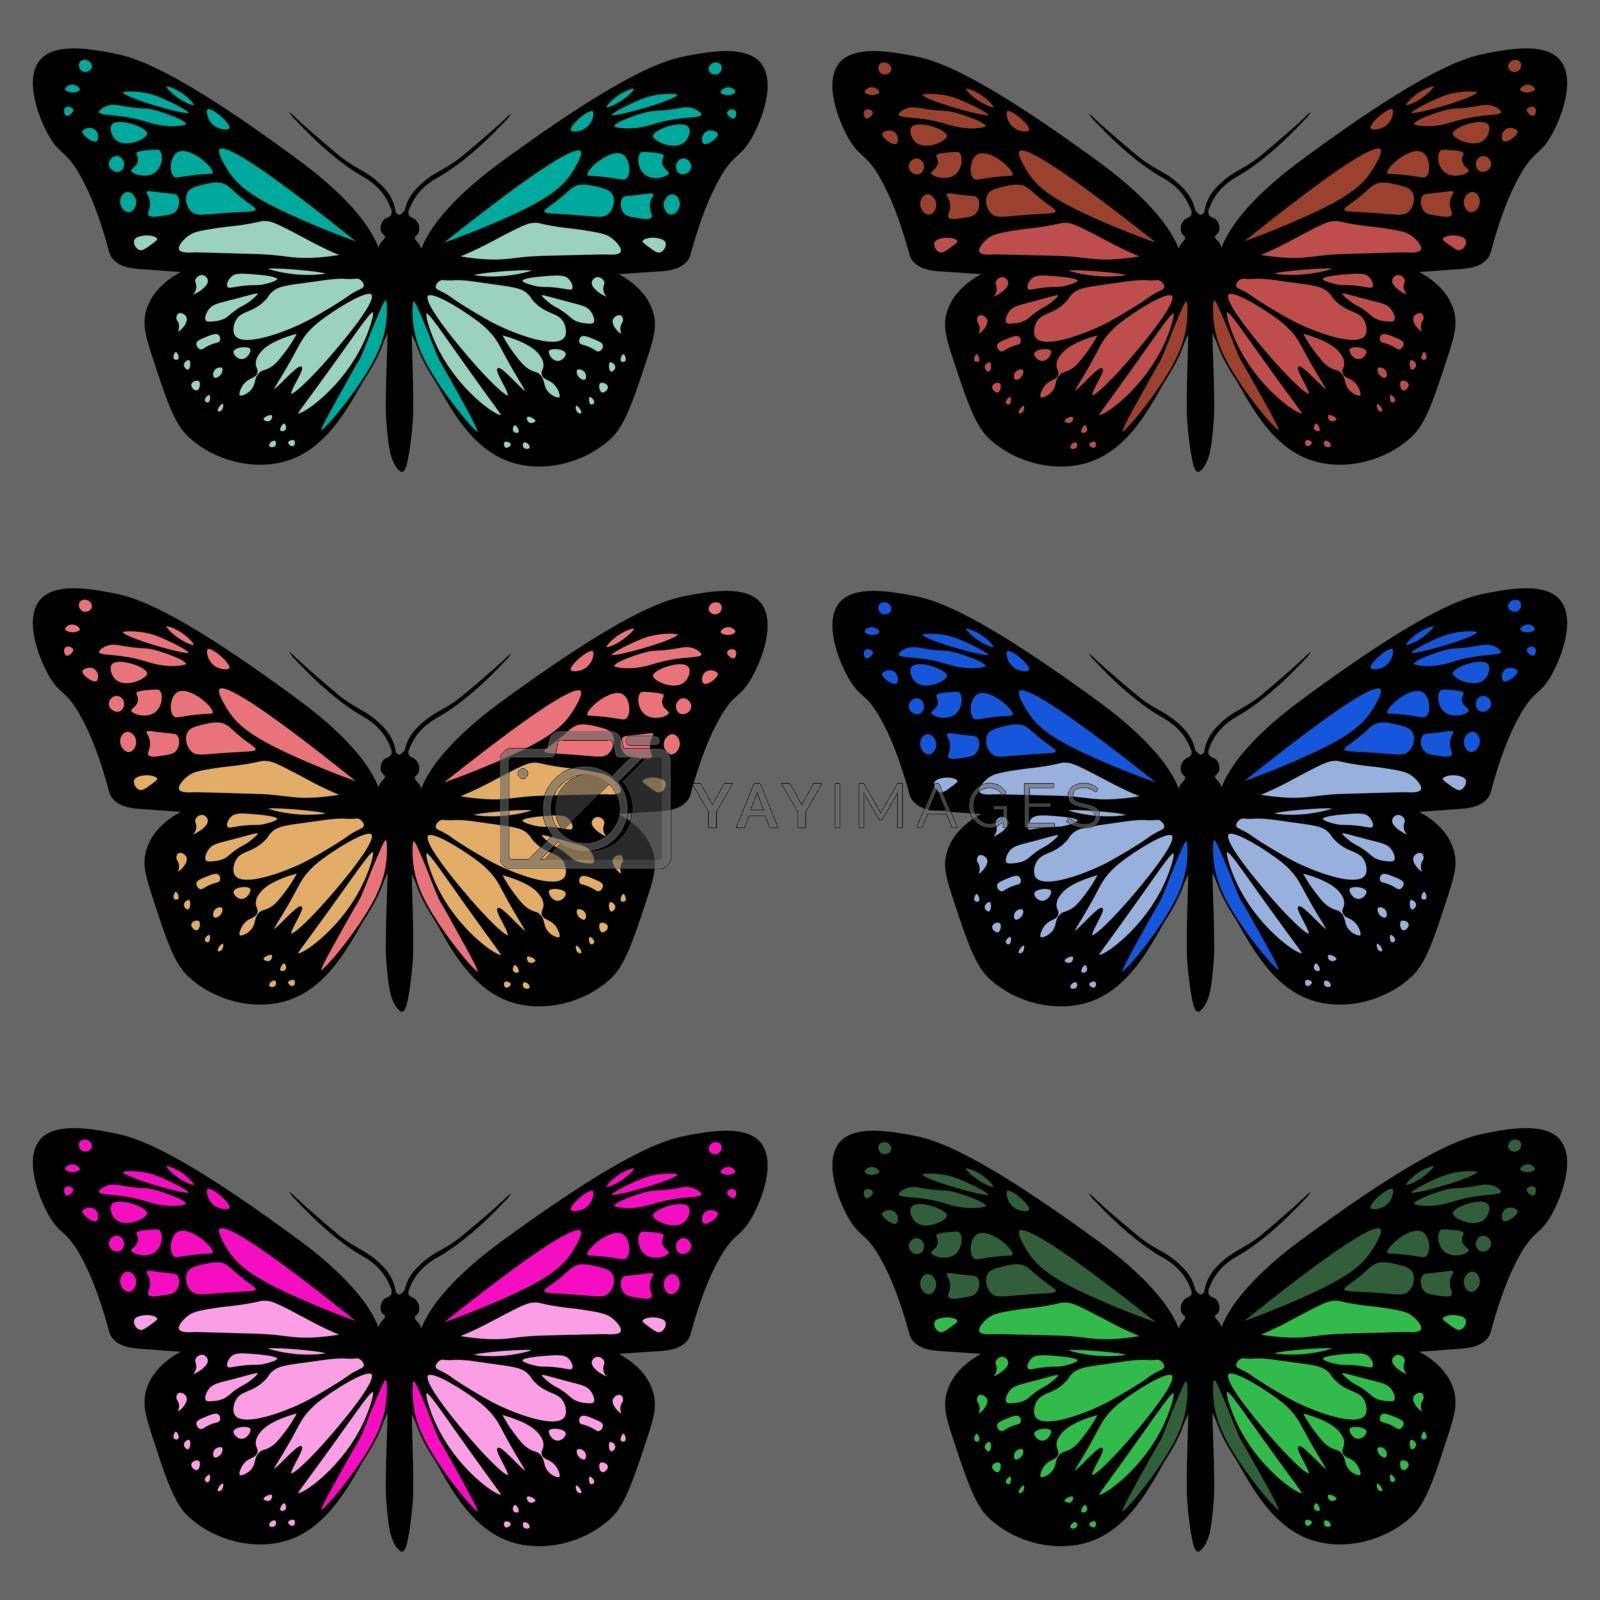 Seamless pattern with six realistic colorful butterflies on grey background